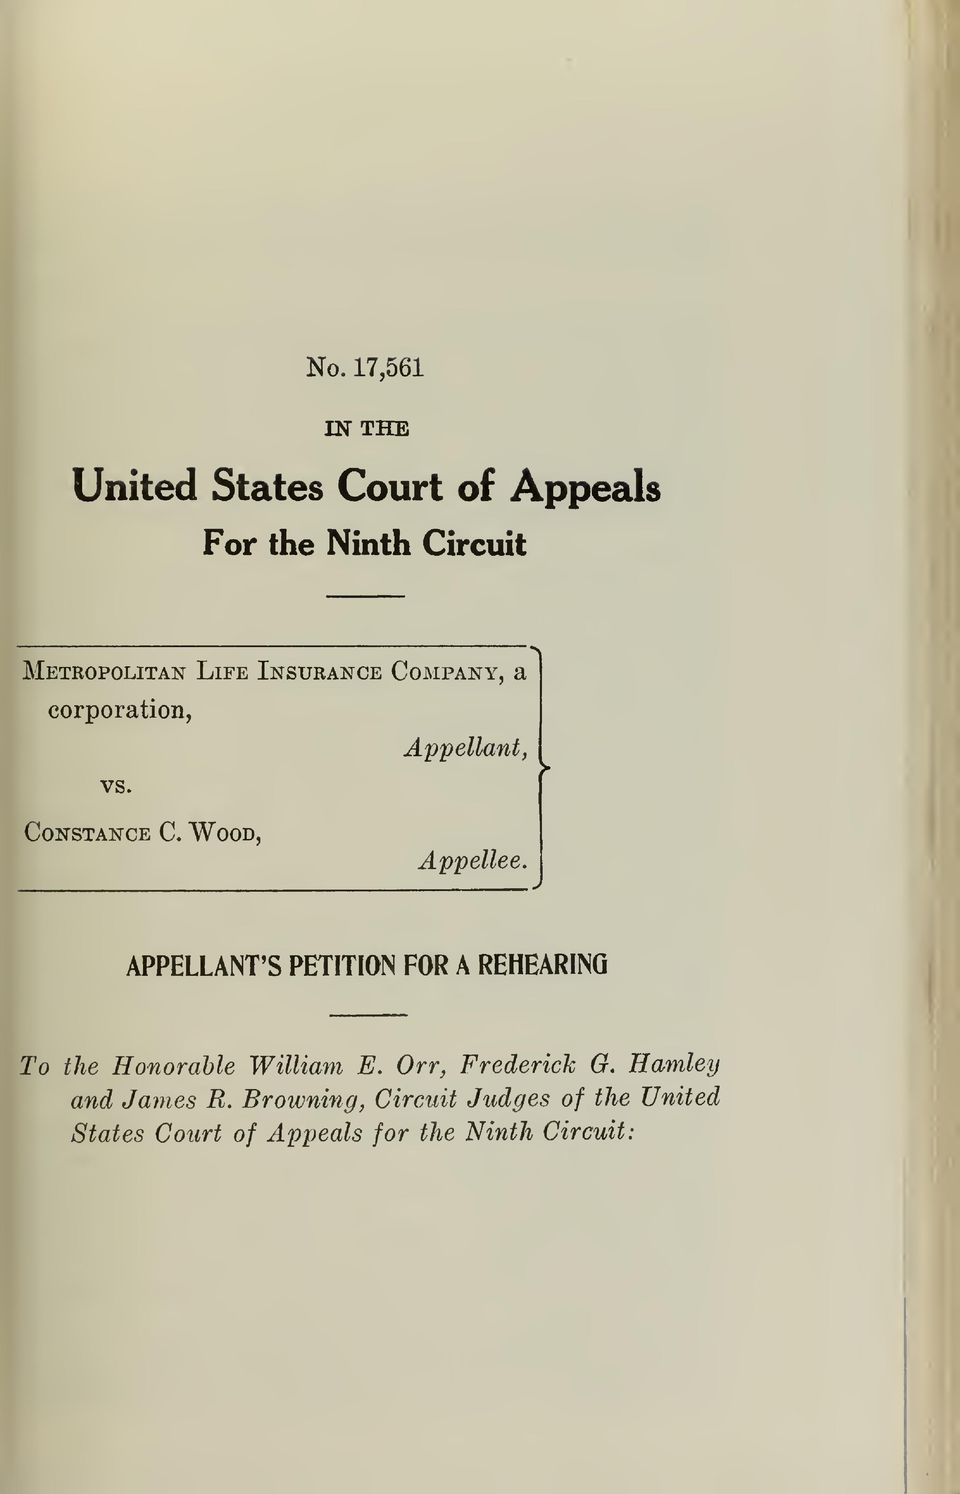 w APPELLANT'S PETITION FOR A REHEARING To the Honorable William E. Orr, Frederick G.